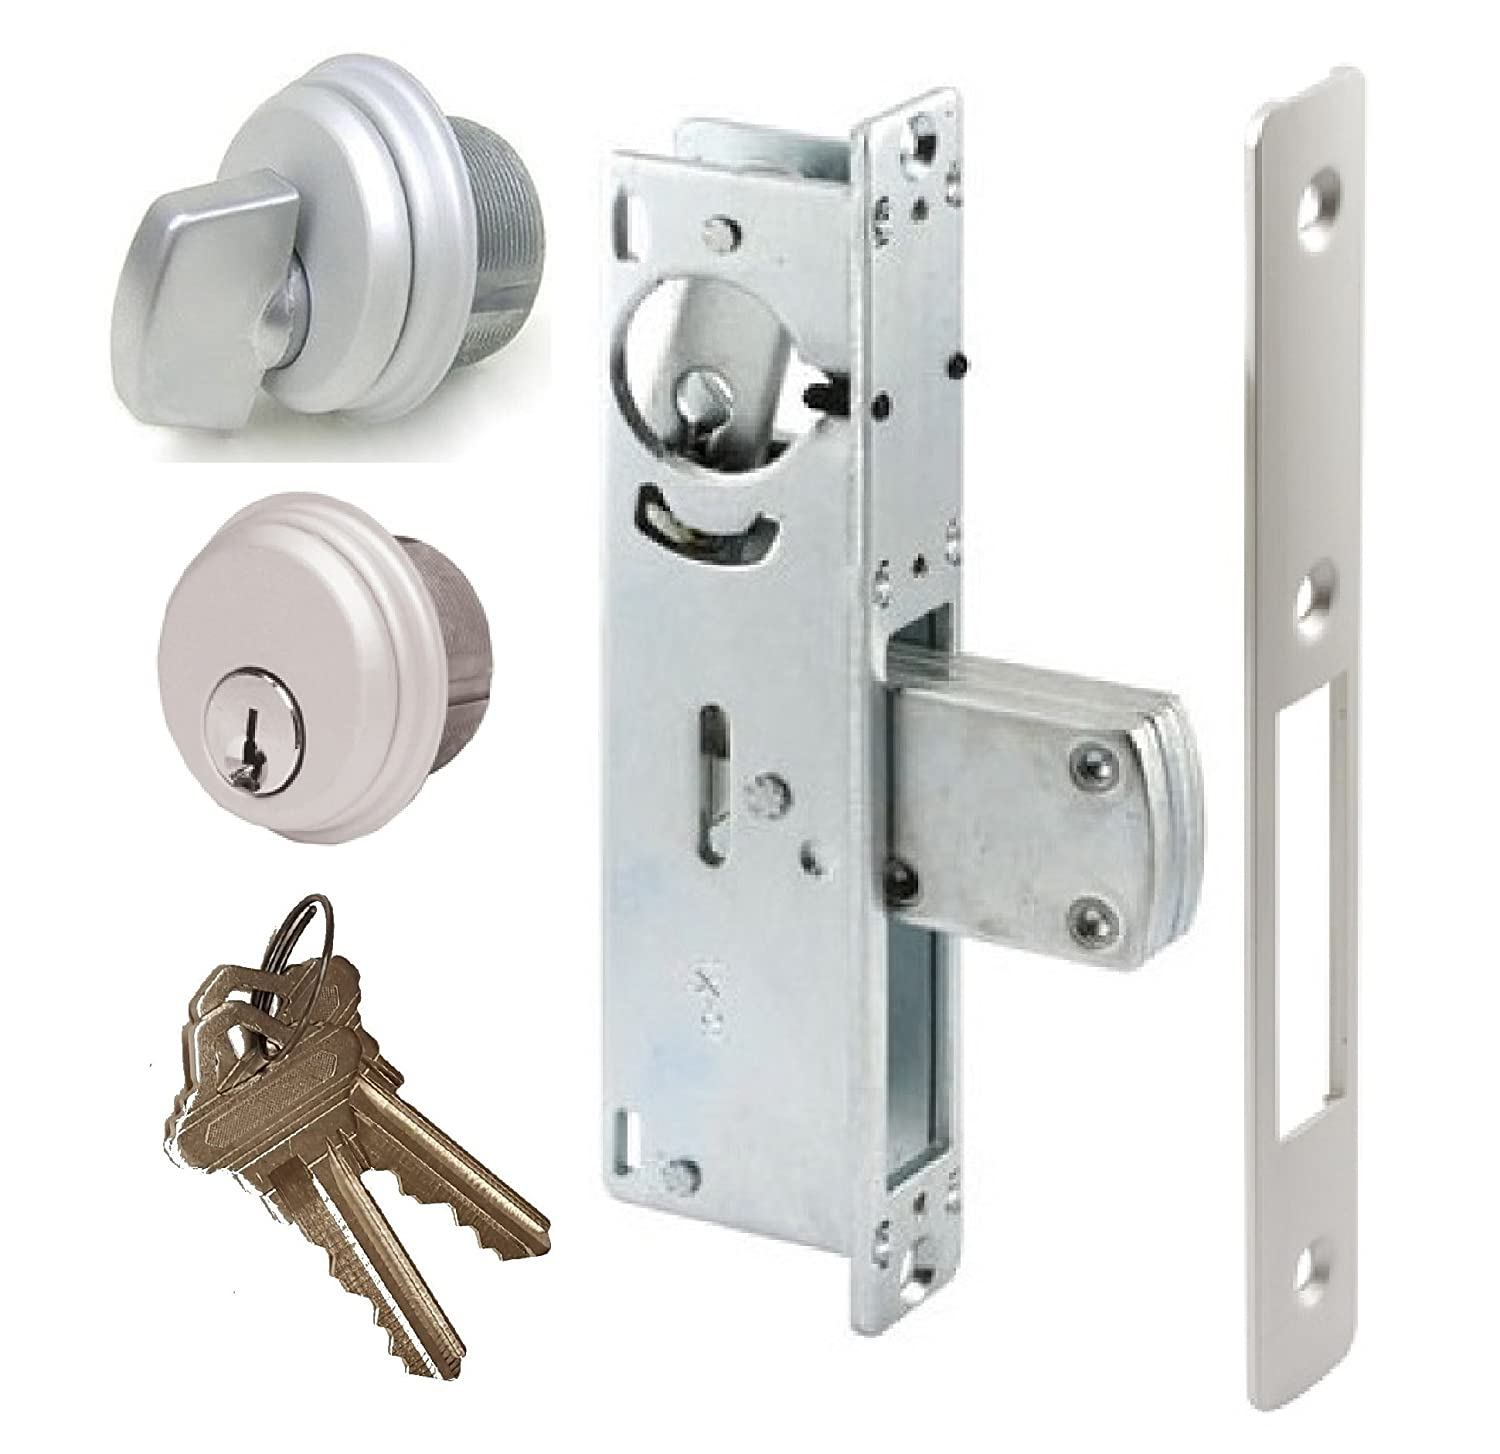 Storefront Door Mortise Lock Swing Deadbolt & Cylinder Combo, Adams Rite Cam, in Aluminum (1-1/8 Backset)